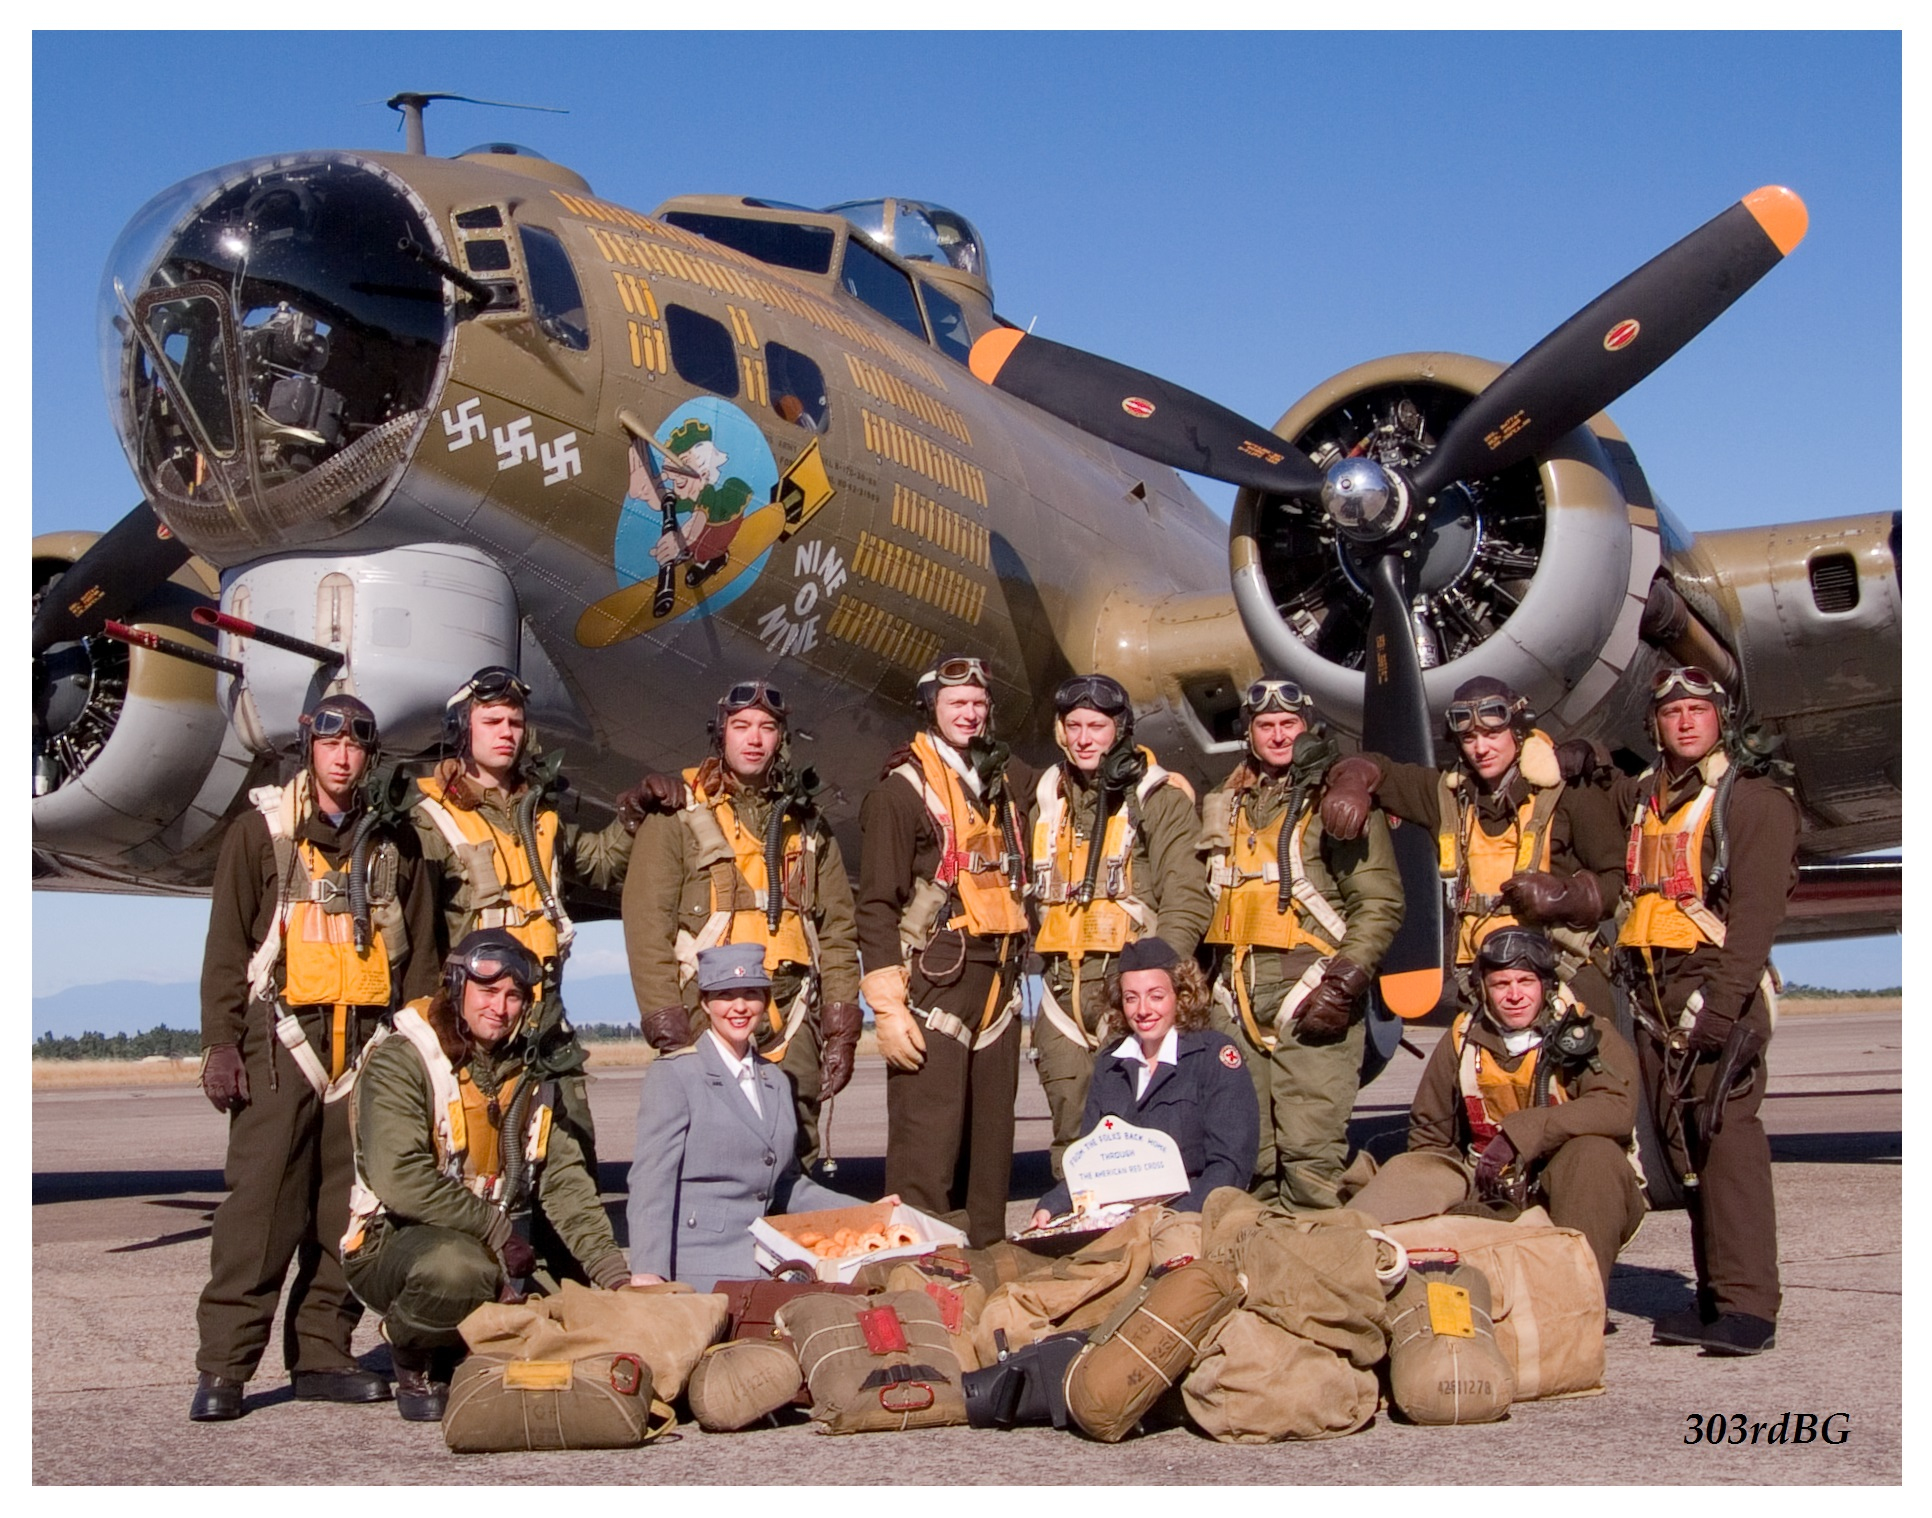 Wwii Uniforms And Flight Gear Photo Shoot B17 Wiring Harness Click Image For A Larger View